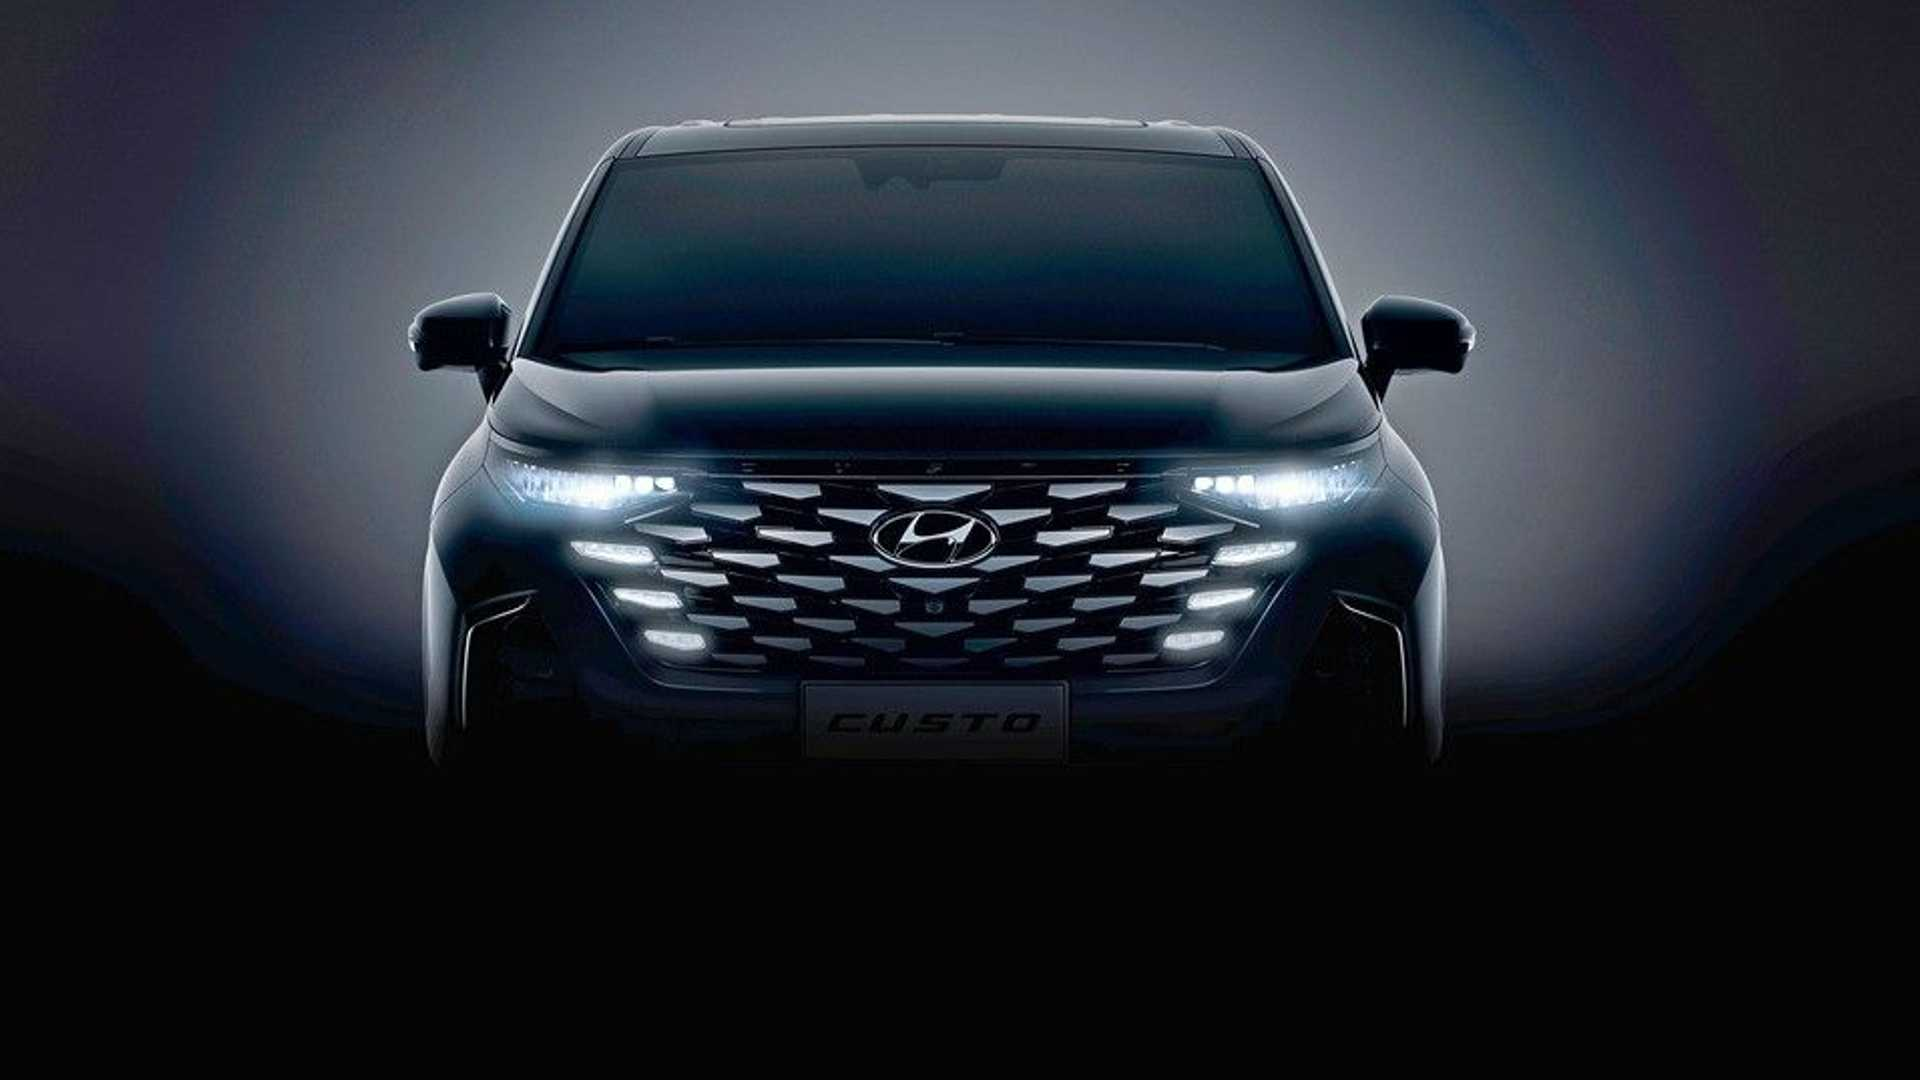 Hyundai's new minivan, which is dubbed the Custo, looks much like the latest-gen Tucson with its headlights, radiator grille, and brake light strip at the rear. The doors slide to open, and there is a small spoiler on the roof.